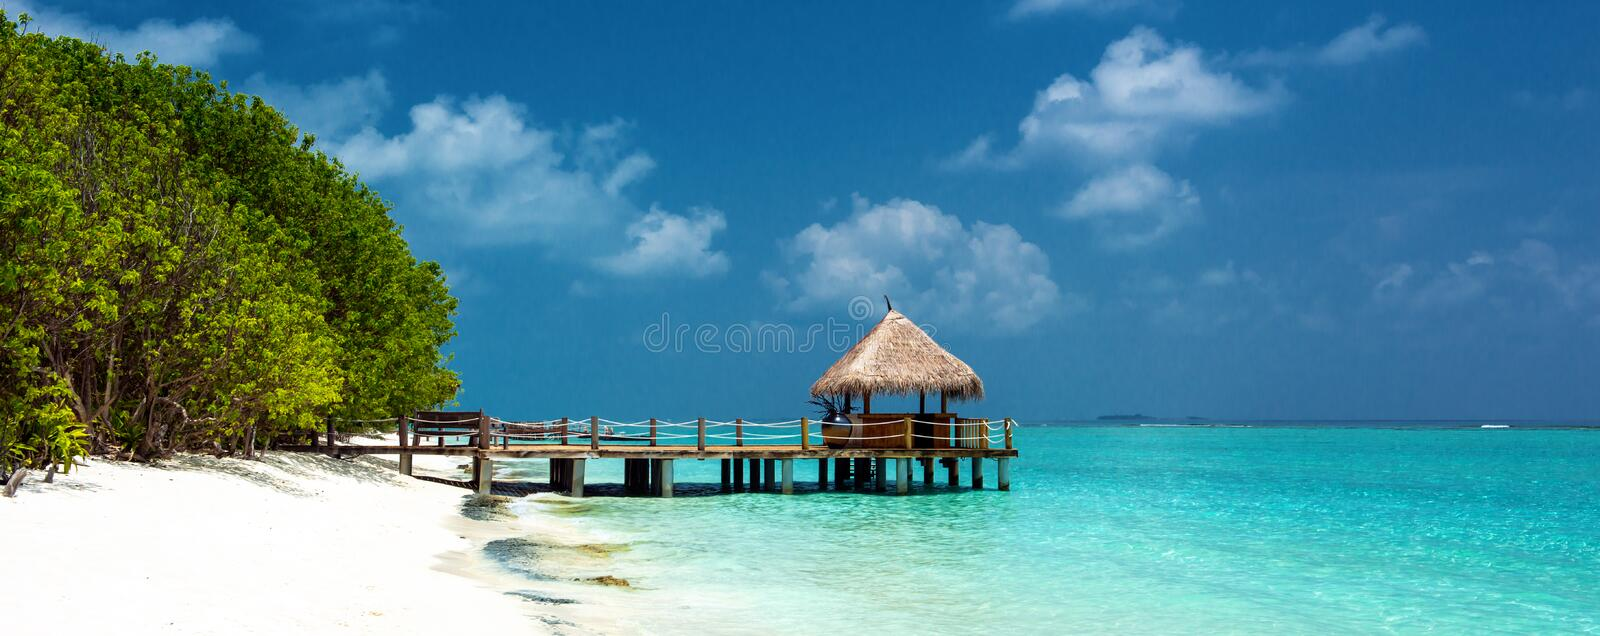 Download Tropical beach panorama stock image. Image of paradise - 28915527